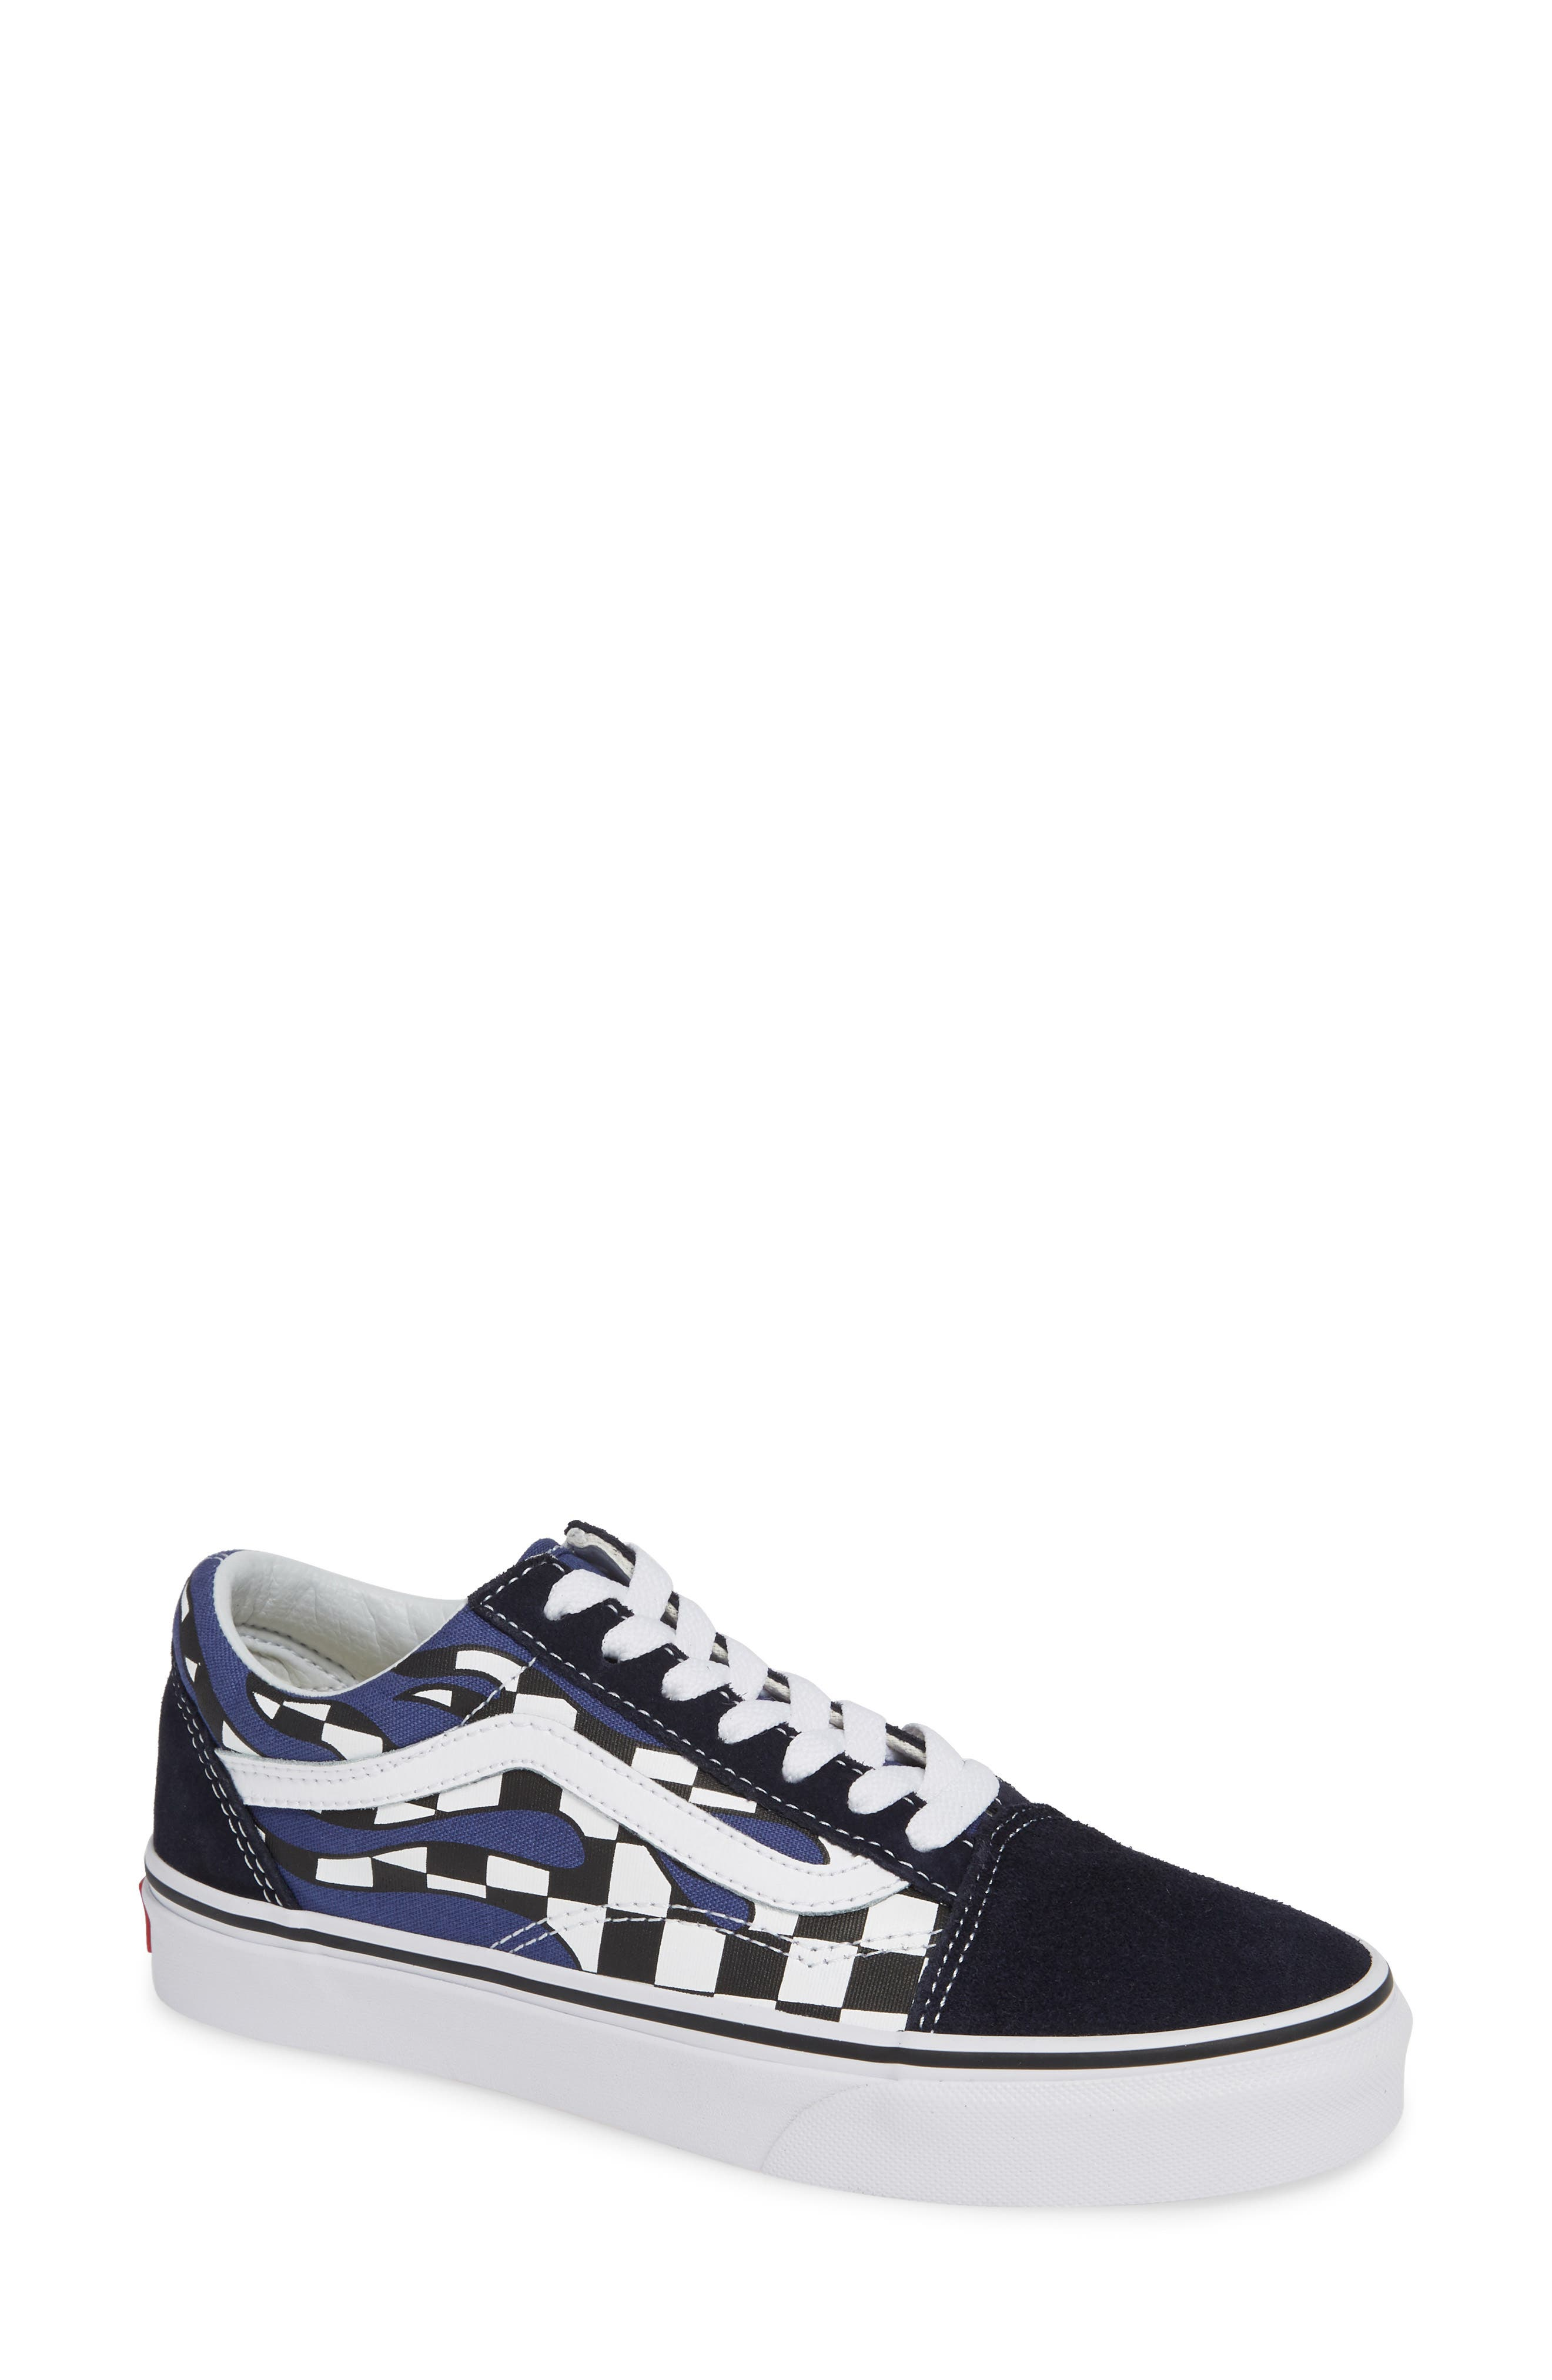 Old Skool Sneaker,                         Main,                         color, NAVY/ TRUE WHITE LEATHER